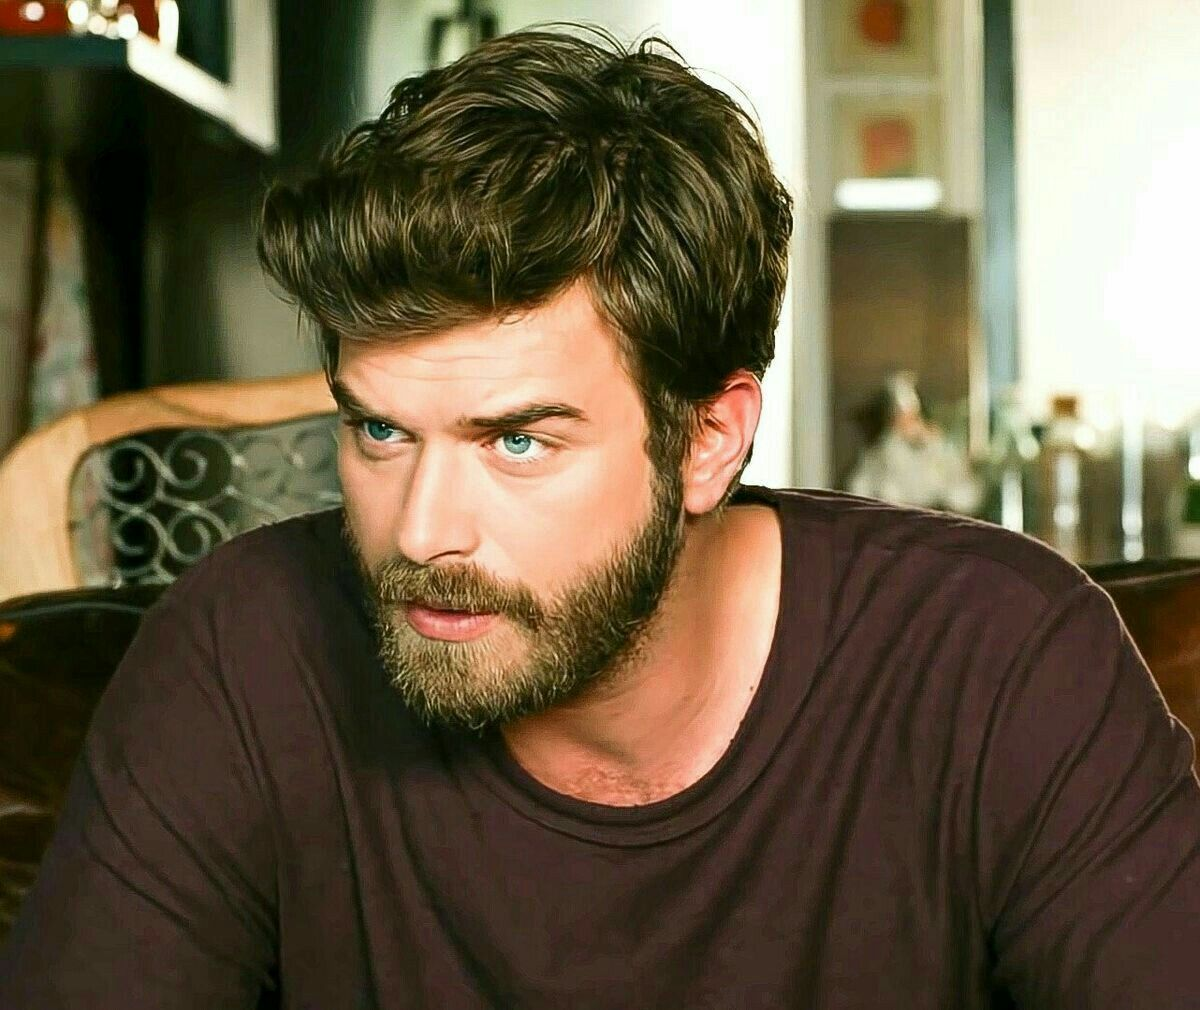 Pin By Bareera On Turkish Actors Actress Dark Hair Blue Eyes Blue Eyed Men Kivanc Tatlitug